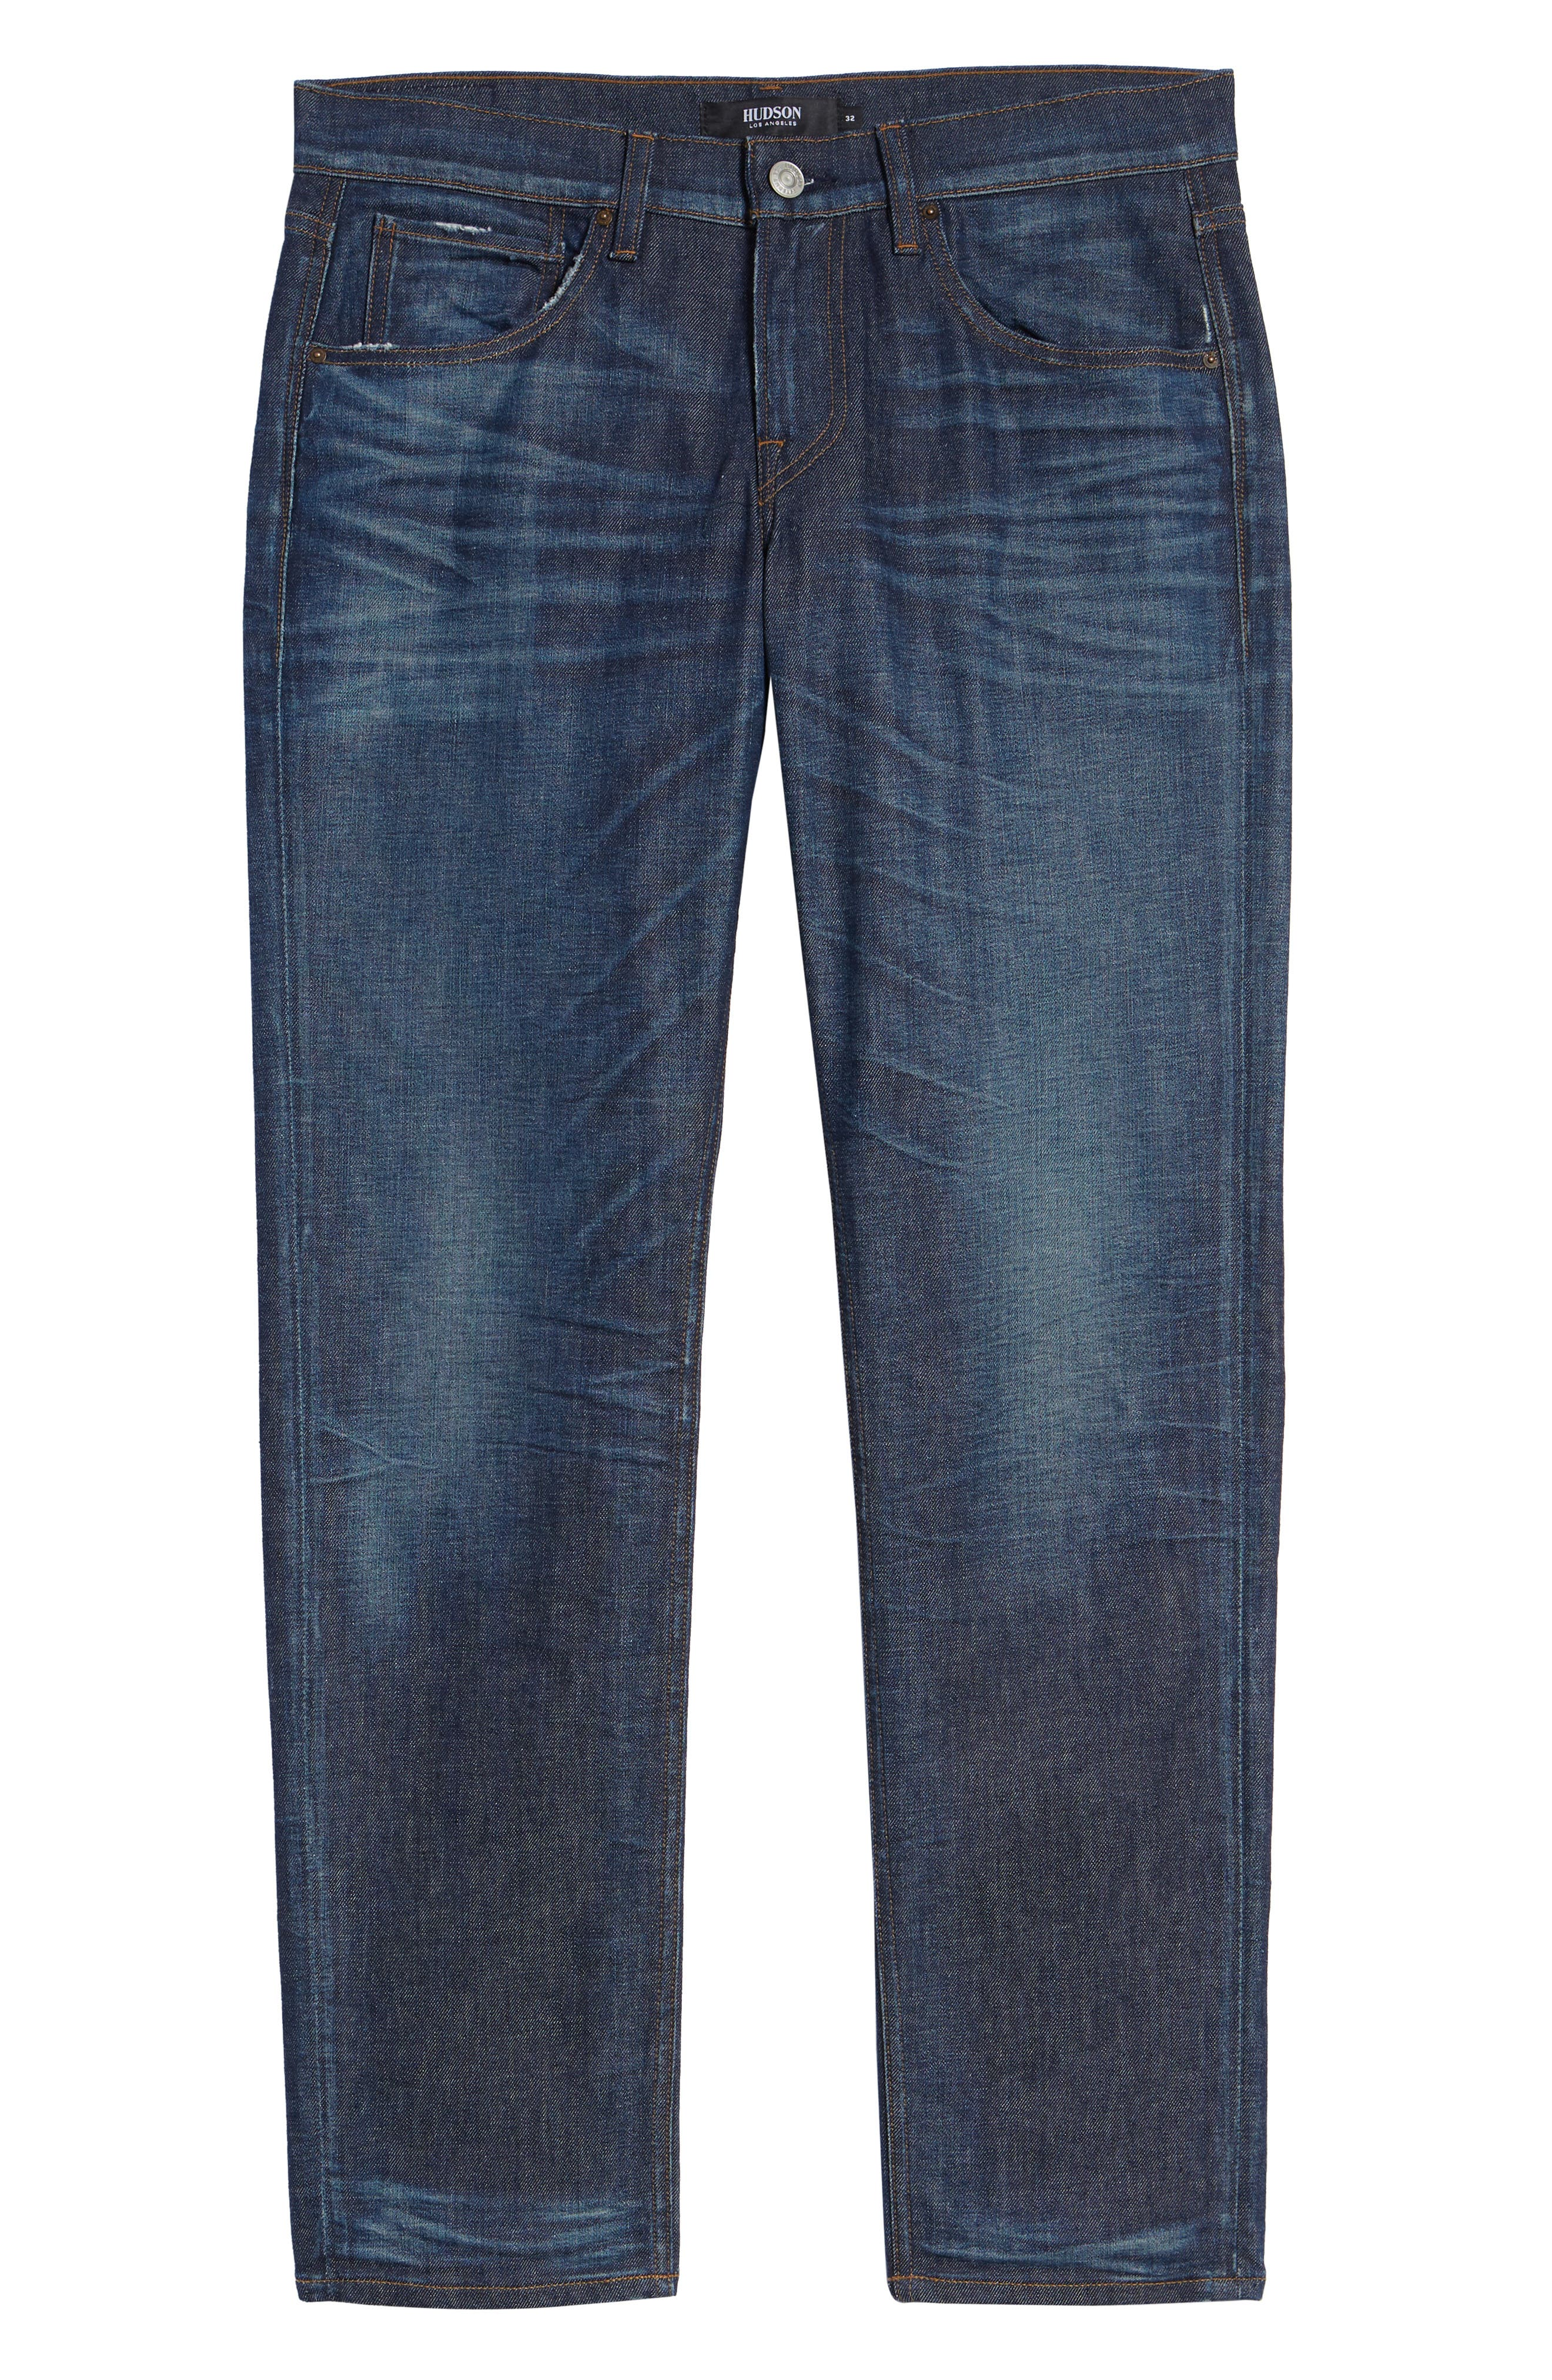 Byron Slim Straight Fit Jeans,                             Alternate thumbnail 6, color,                             ALBANY